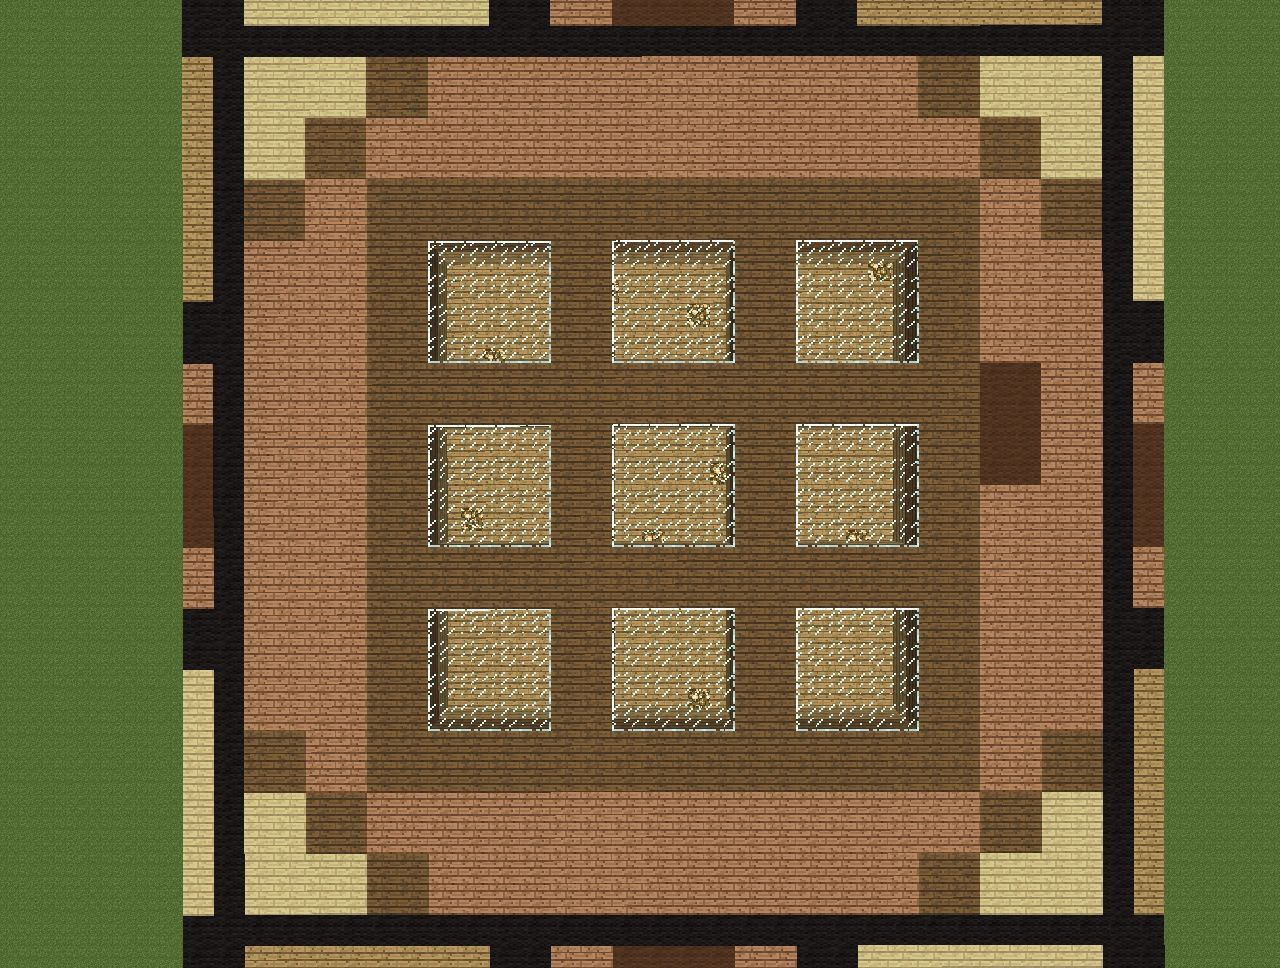 Crafting Table House 32x32 Ultimate Flatland Survival